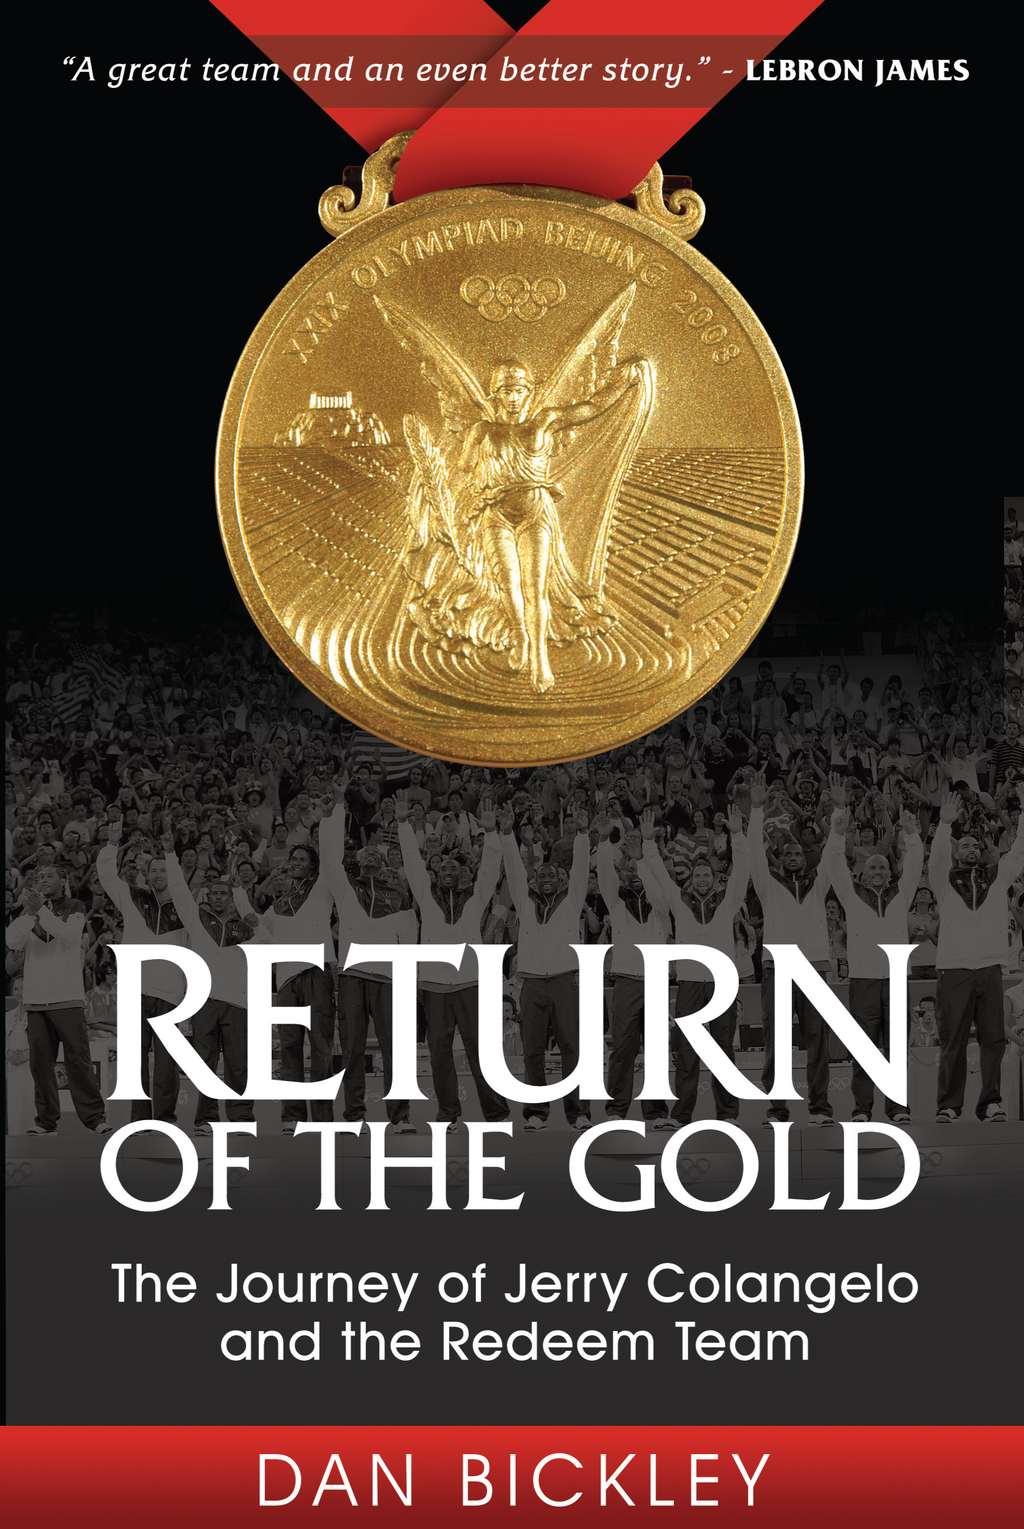 Return of the Gold: The Journey of Jerry Colangelo and the Redeem Team By: Dan Bickley